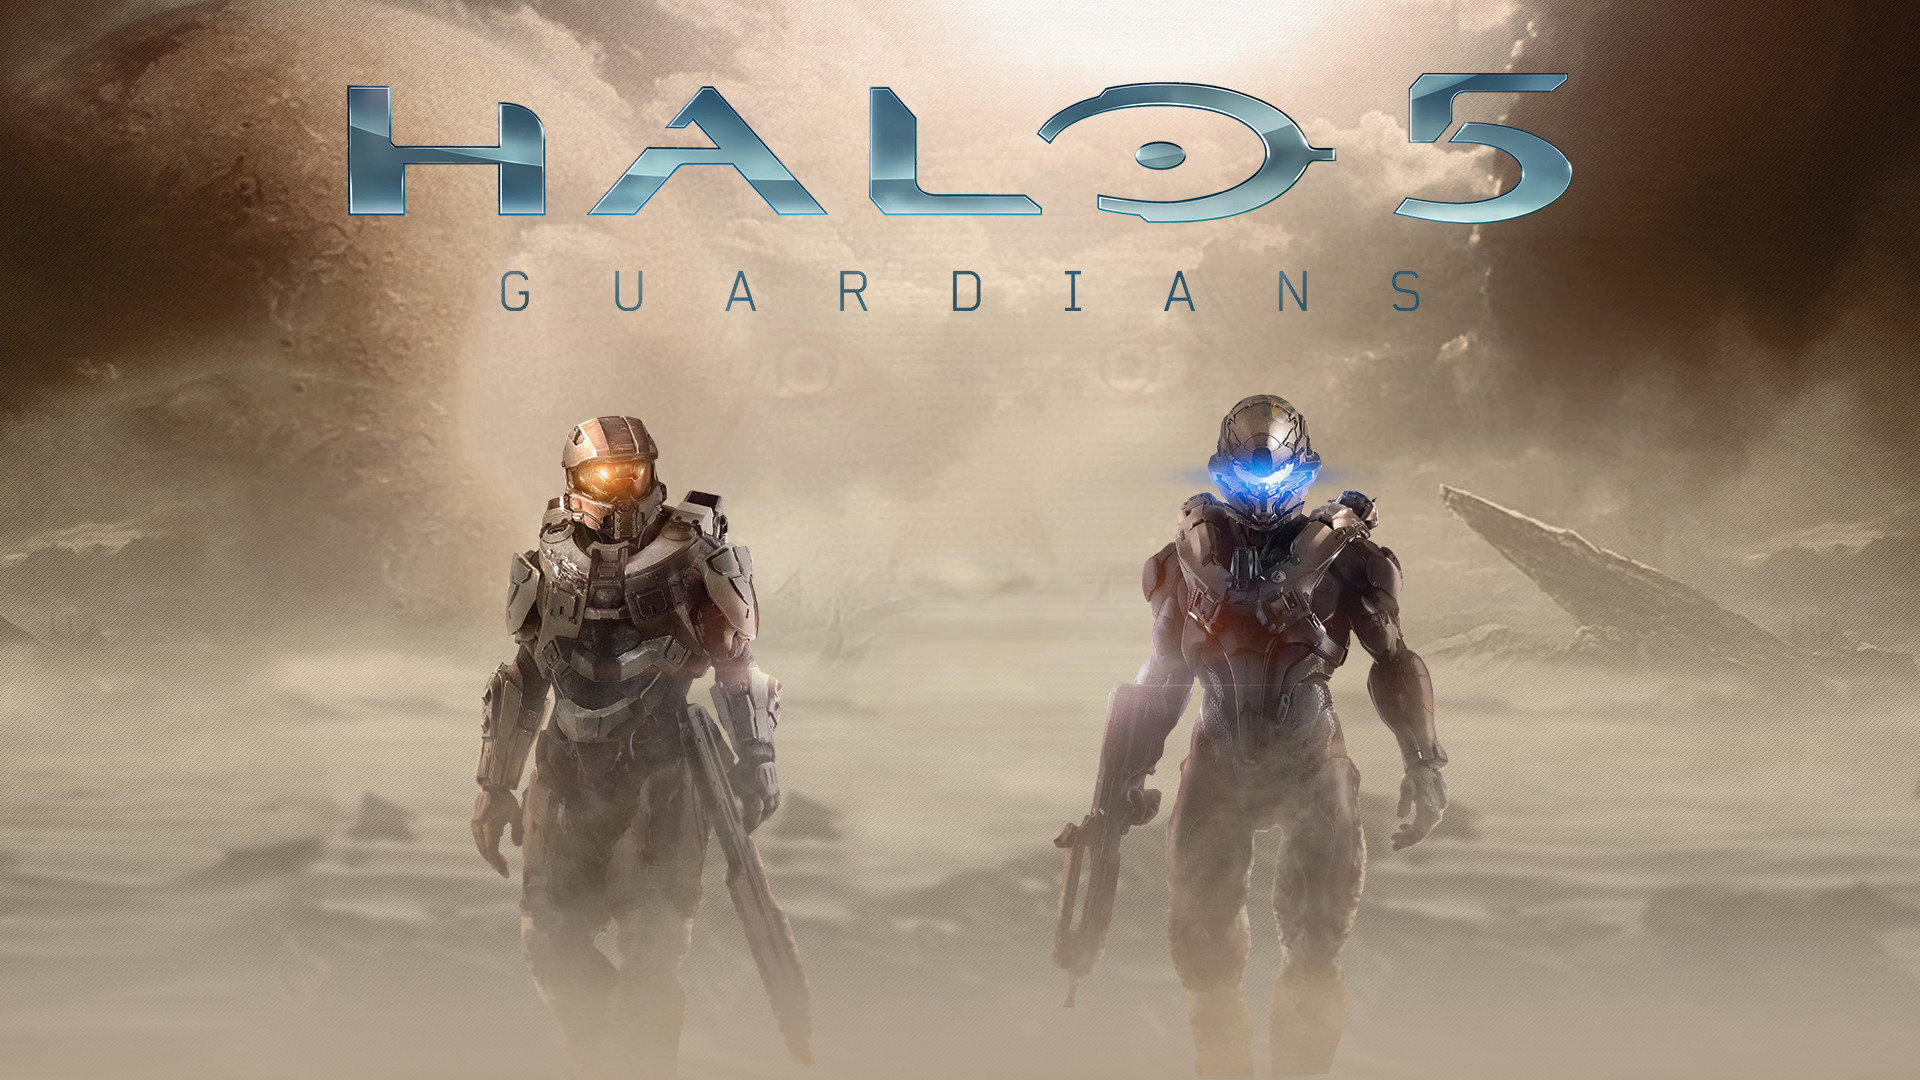 Best Halo 5 Guardians Wallpaper Id 116988 For High Resolution Hd